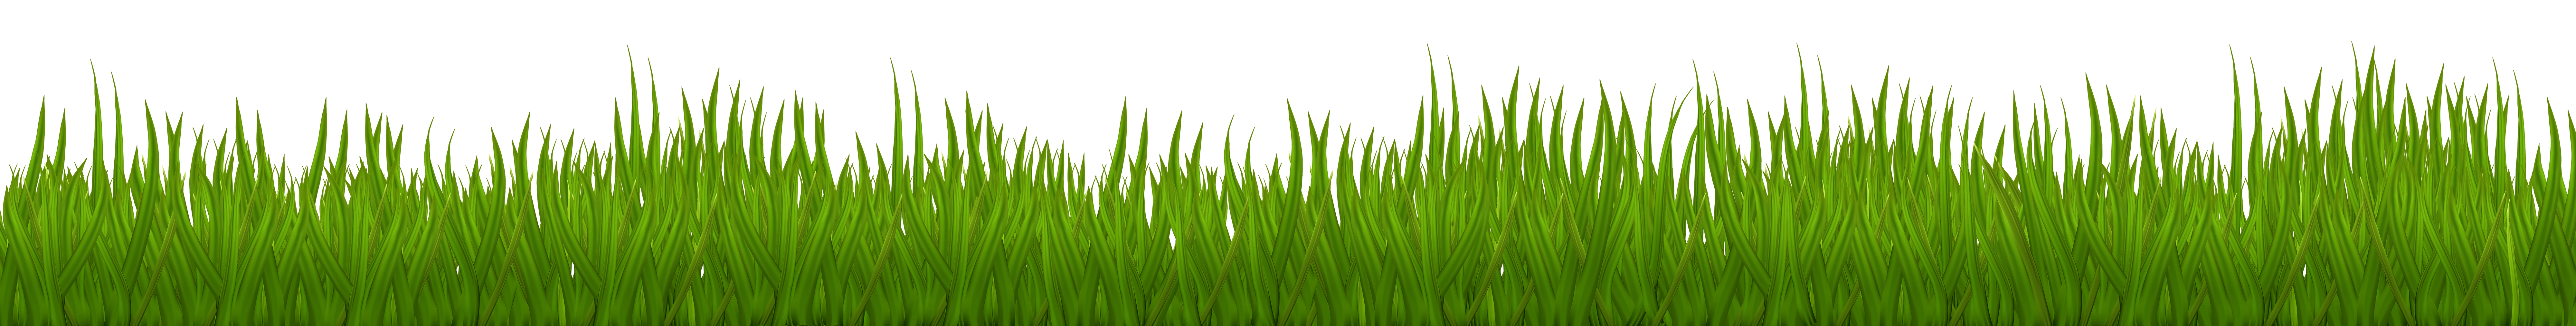 Grass sun clipart picture library stock Grass PNG Clip Art Image | Clipart and Wallpaper | Pinterest | Art ... picture library stock